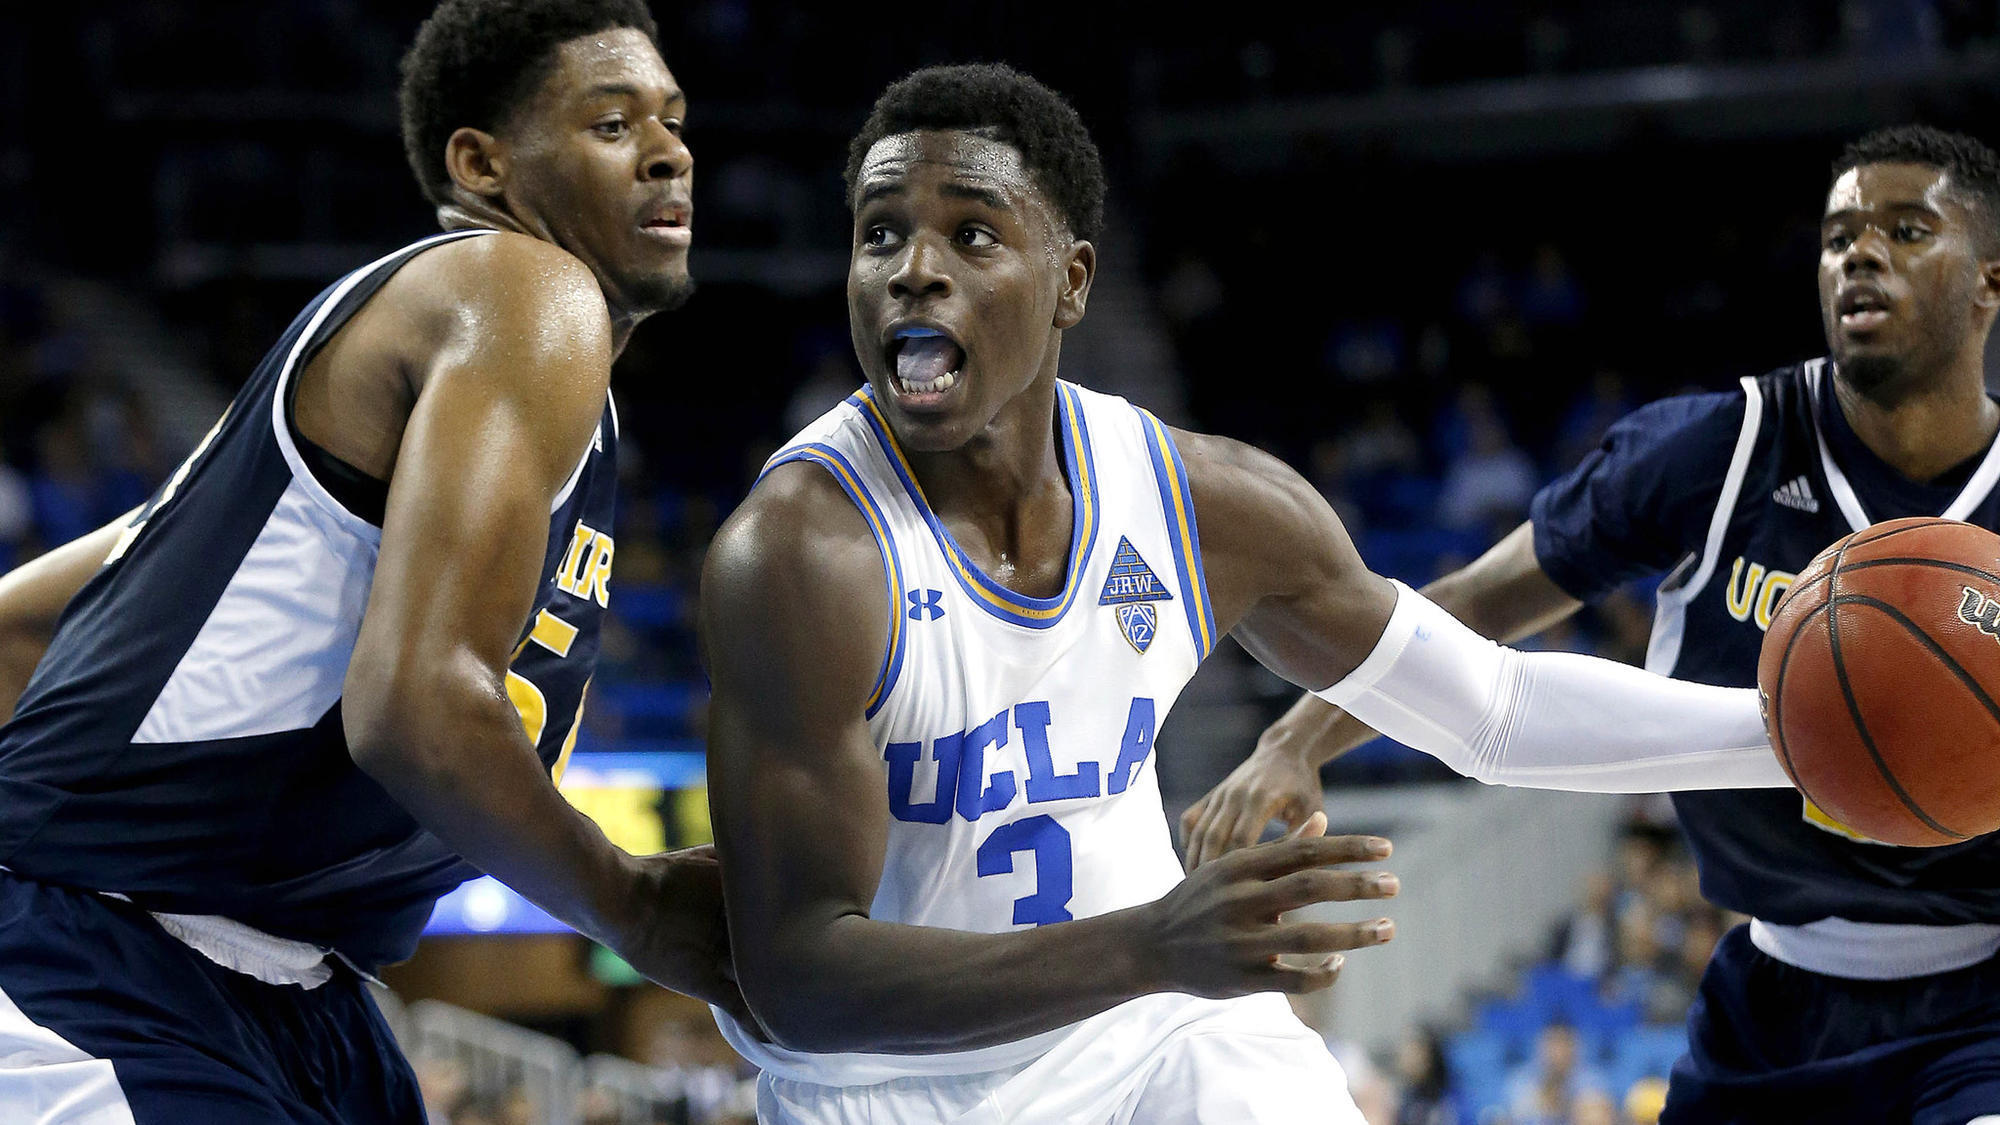 Prince Ali carries scoring load early before UCLA pulls away from